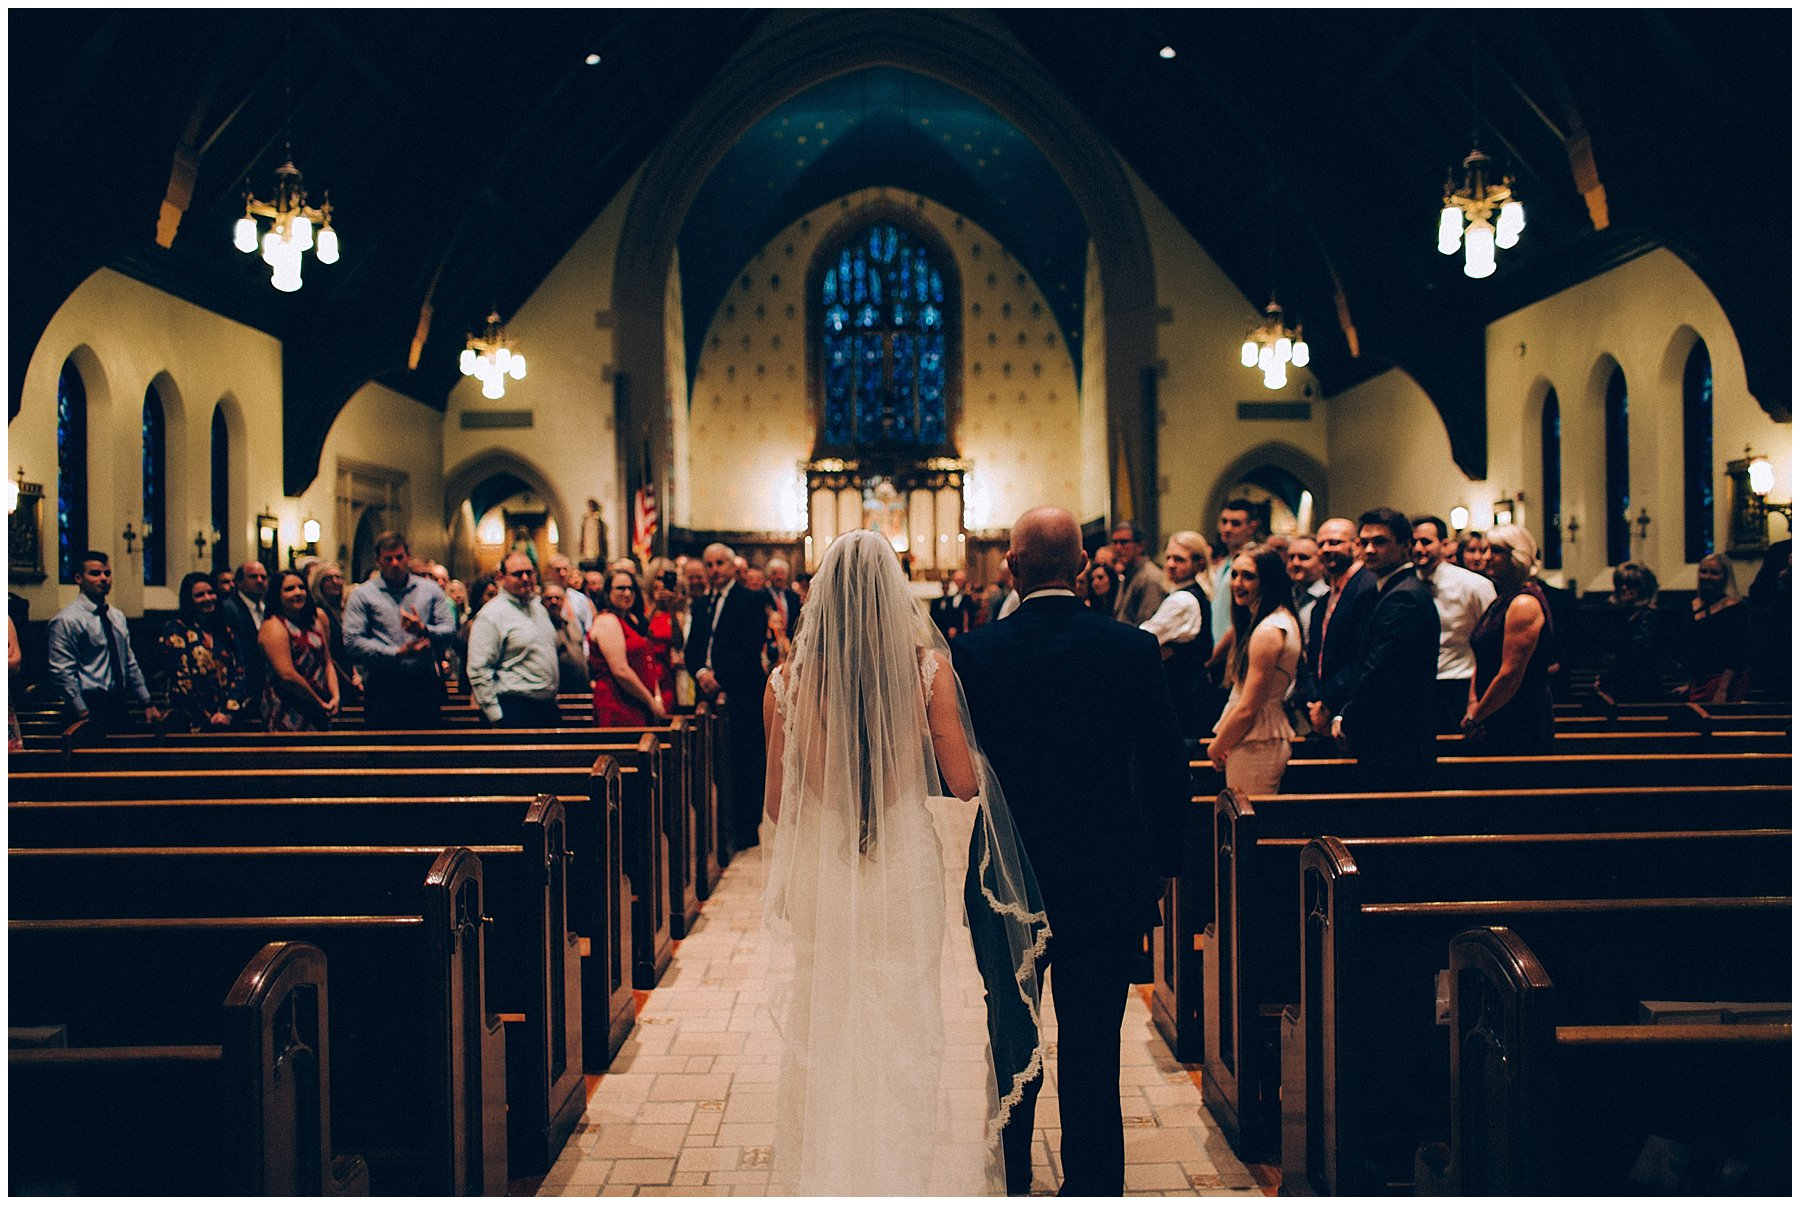 St Augustins Catholic Church wedding in Des Moines